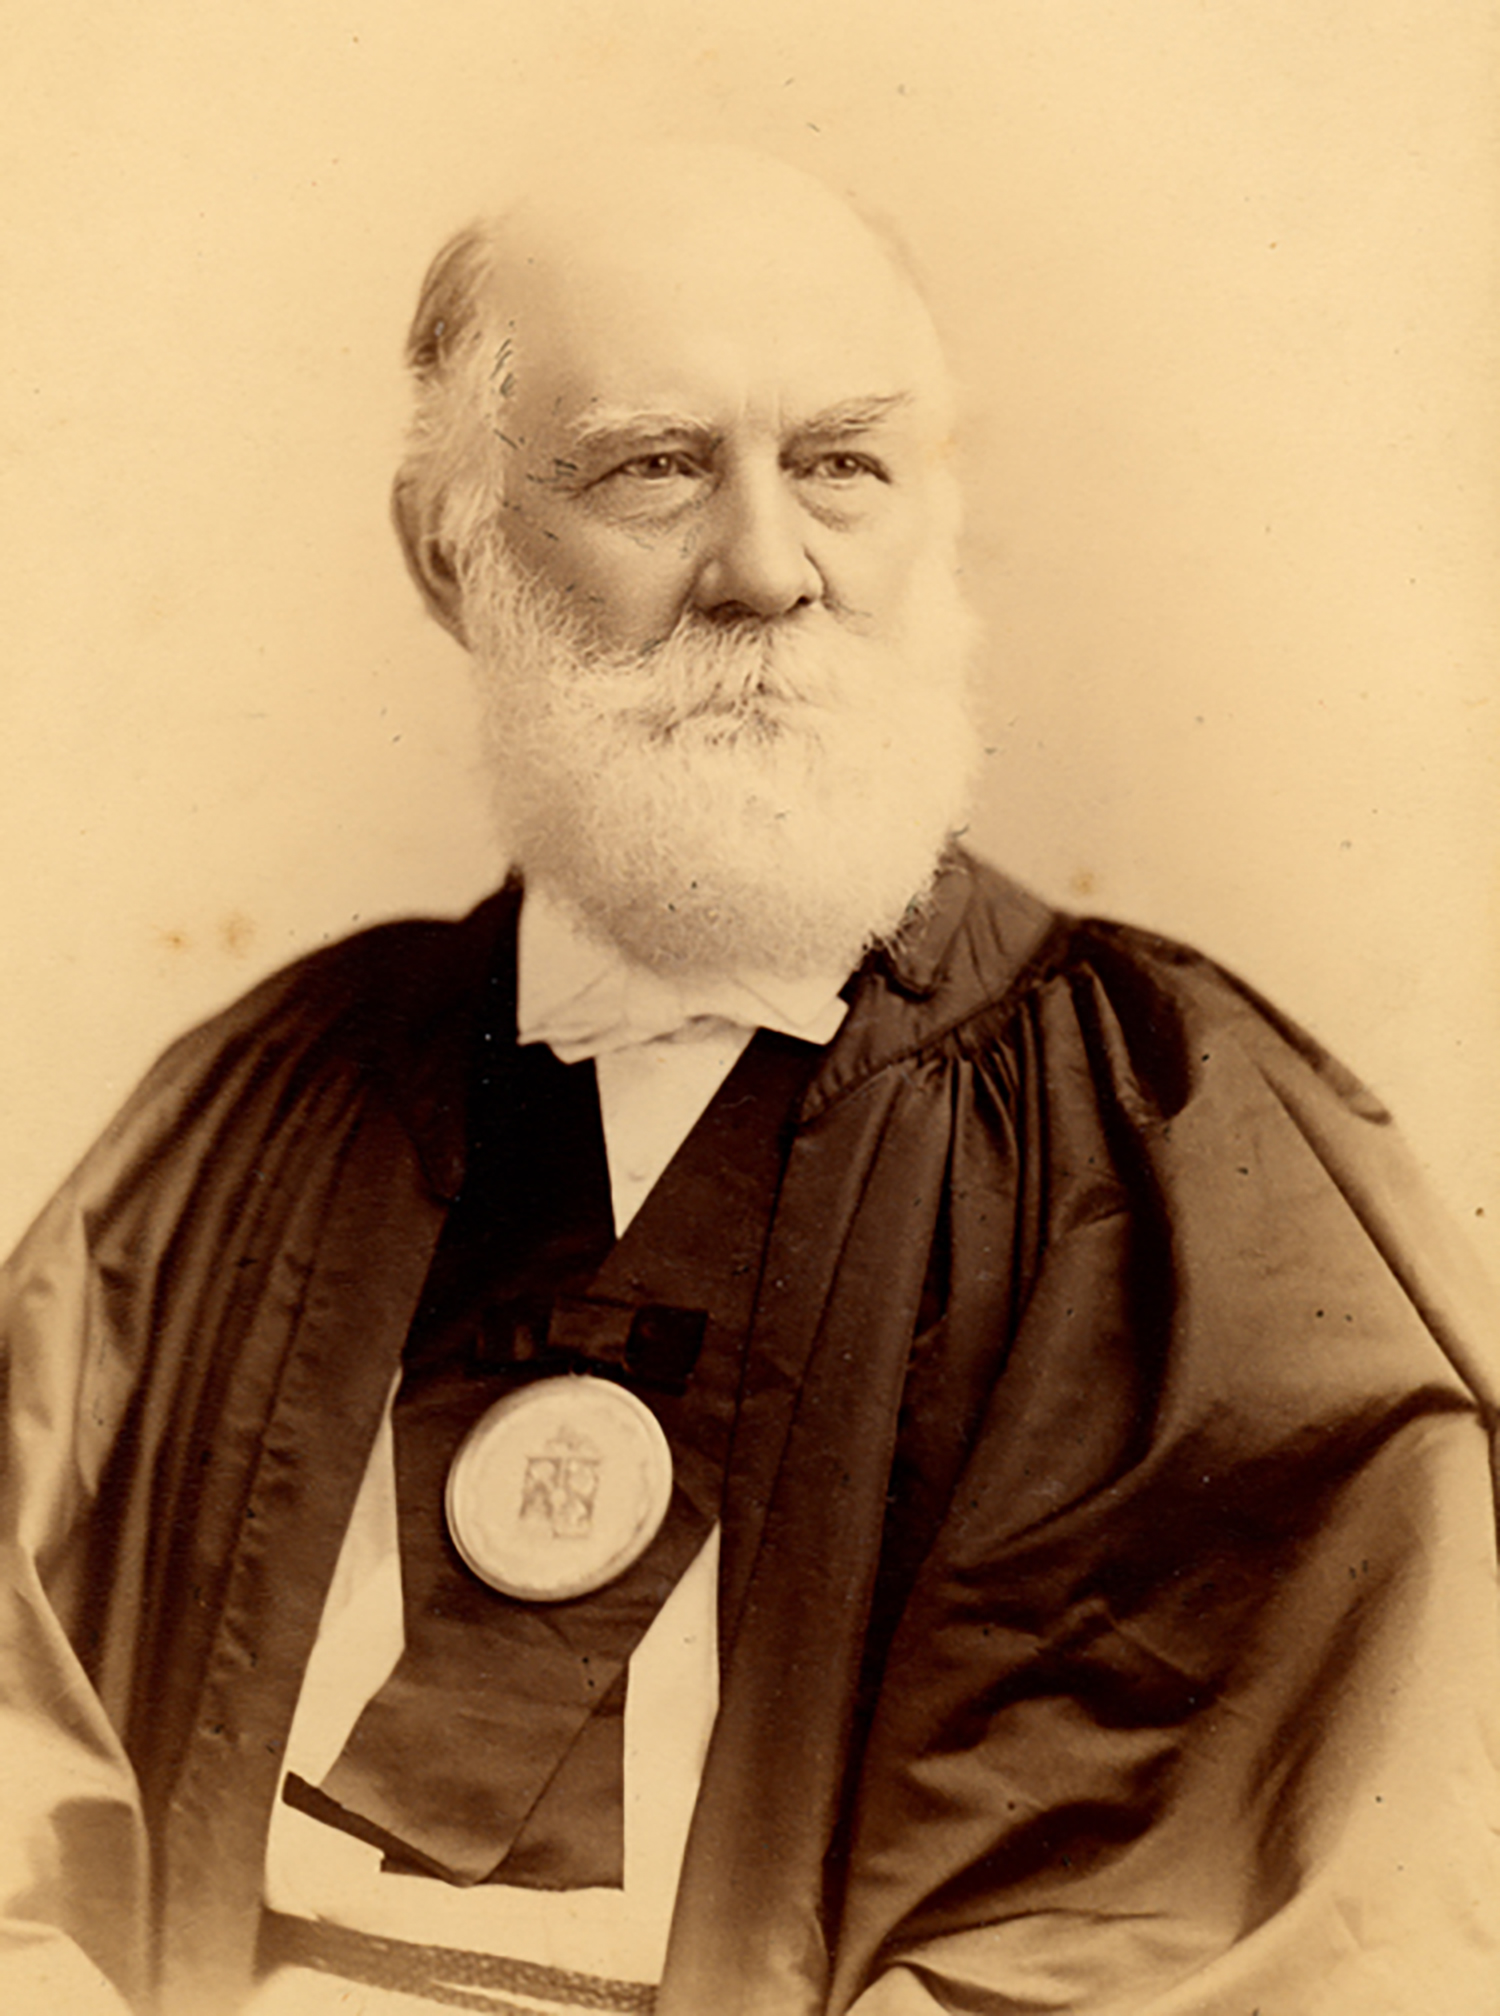 Figure 1: William Henry Benade (1816-1905). Photograph courtesy of the Glencairn Museum Archives.